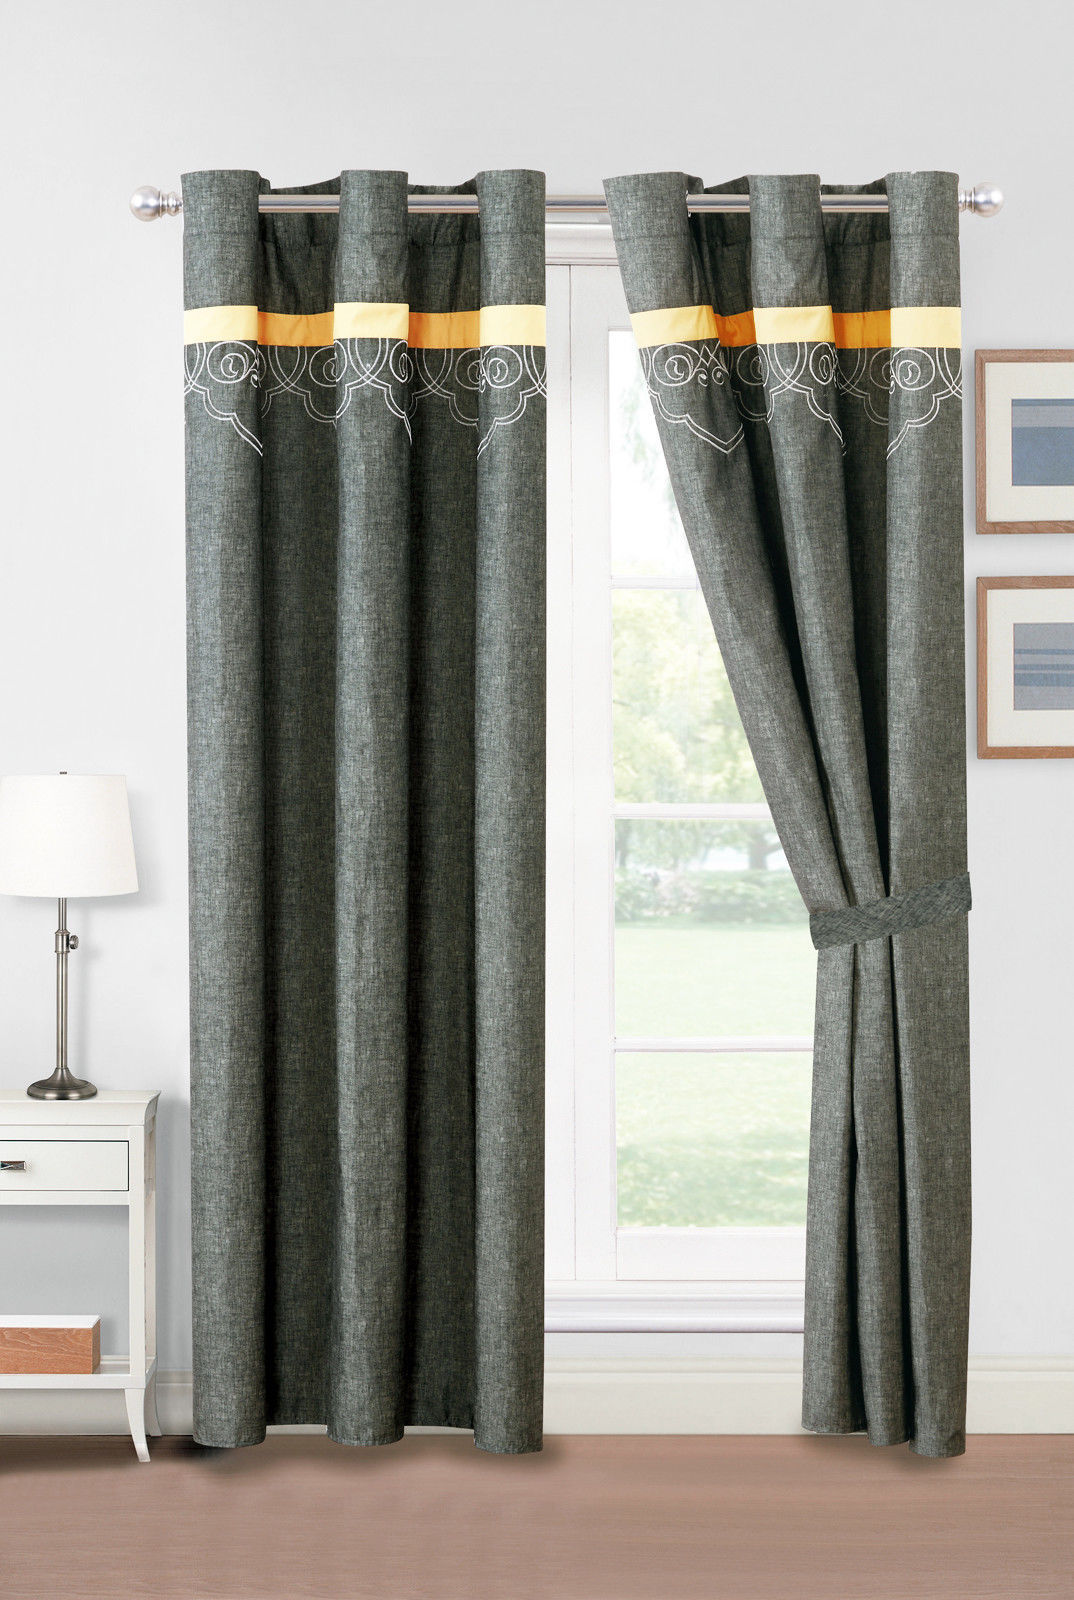 4P Adeline Geometric Floral Tetrafoil Embroidery Curtain Set Antique Gray Yellow - $40.89